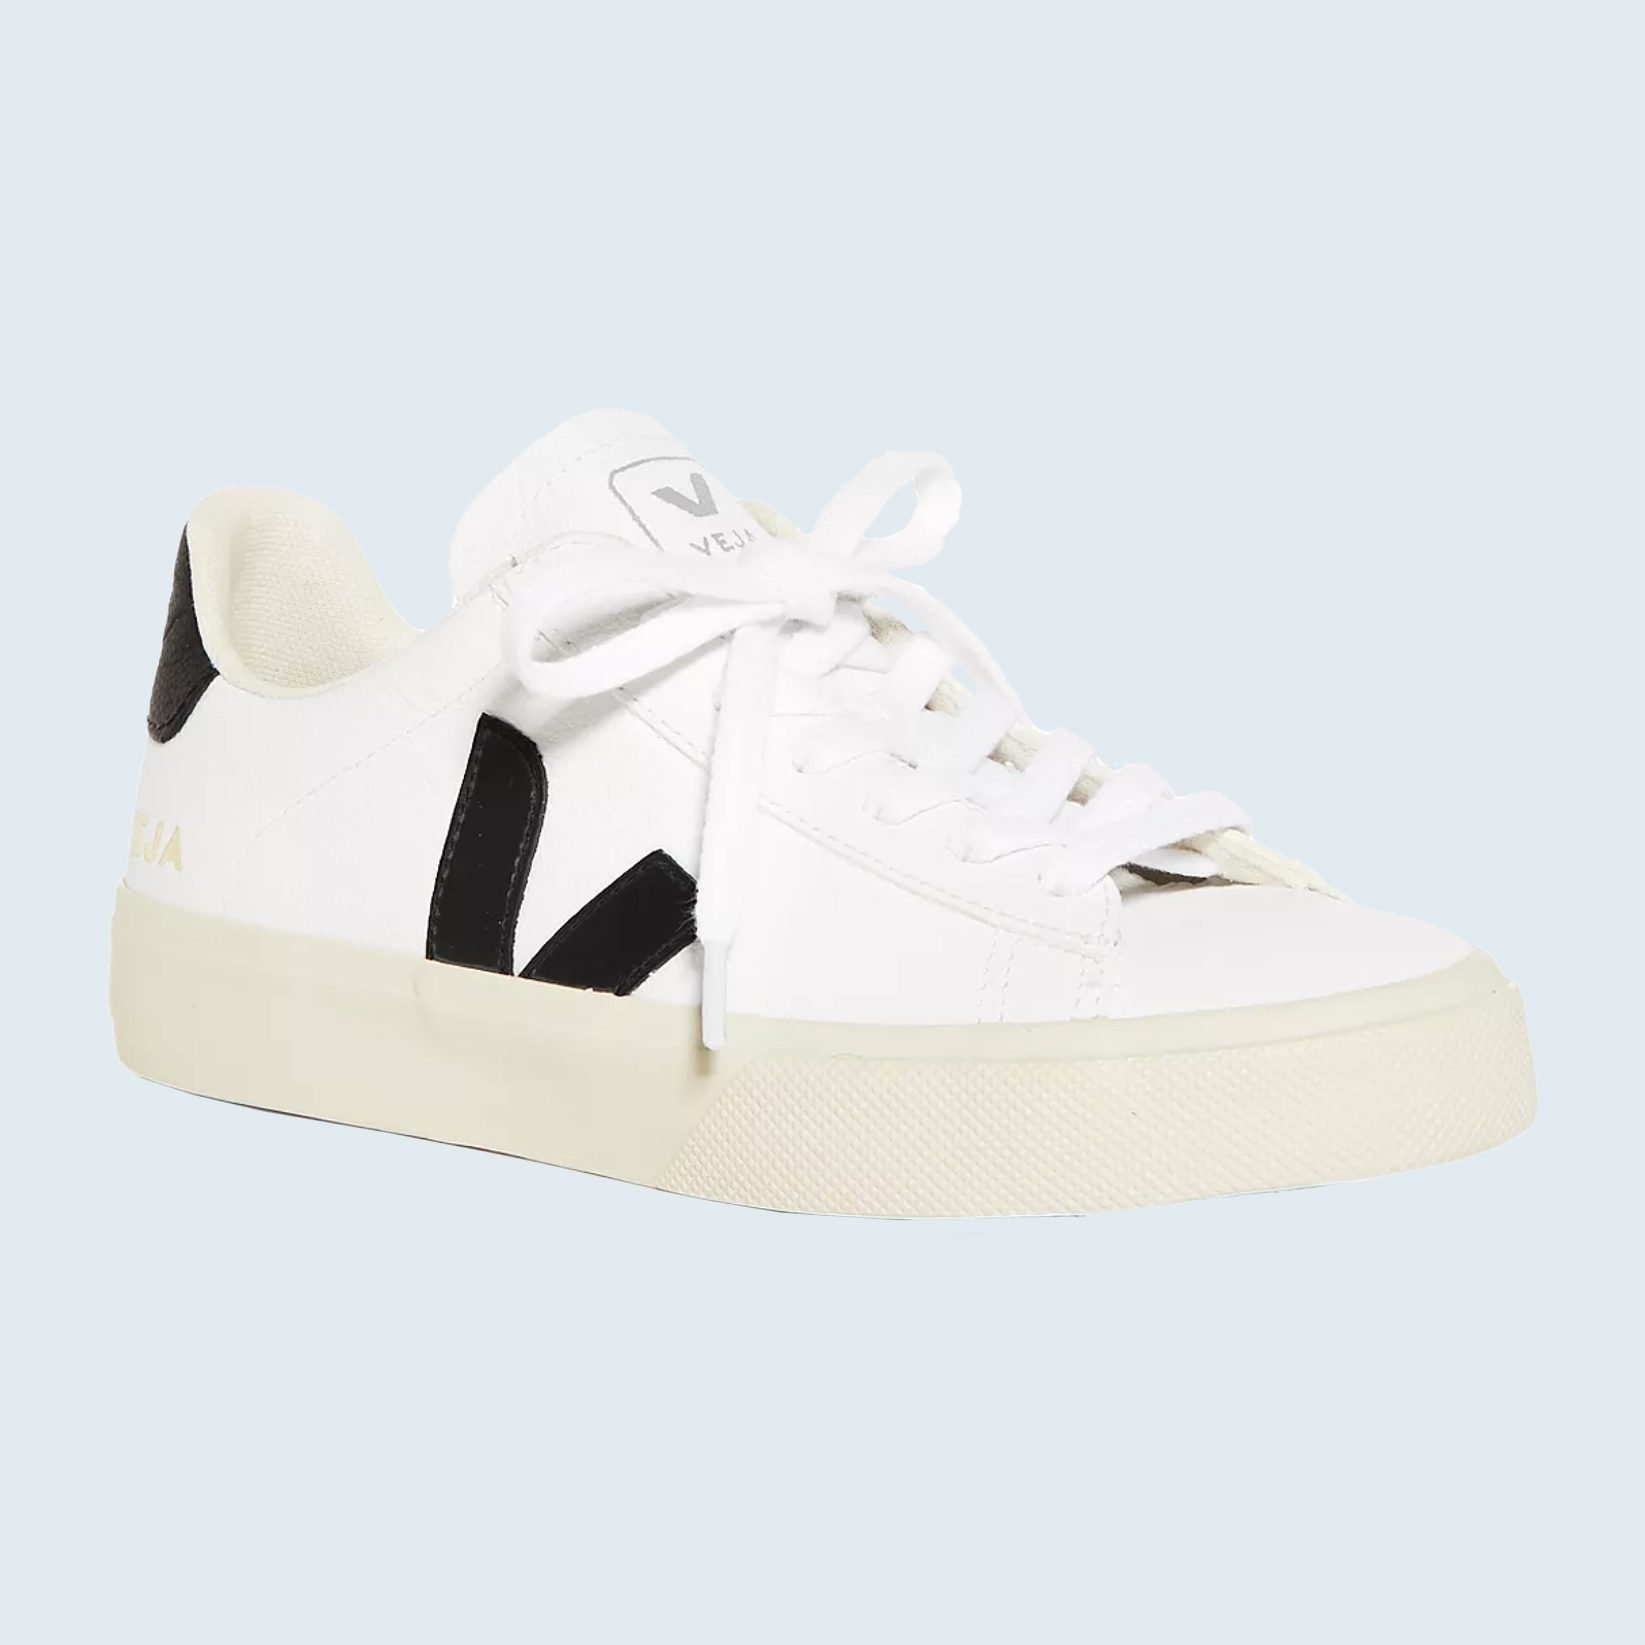 The Women's Campo Low Top Sneakers from Veja